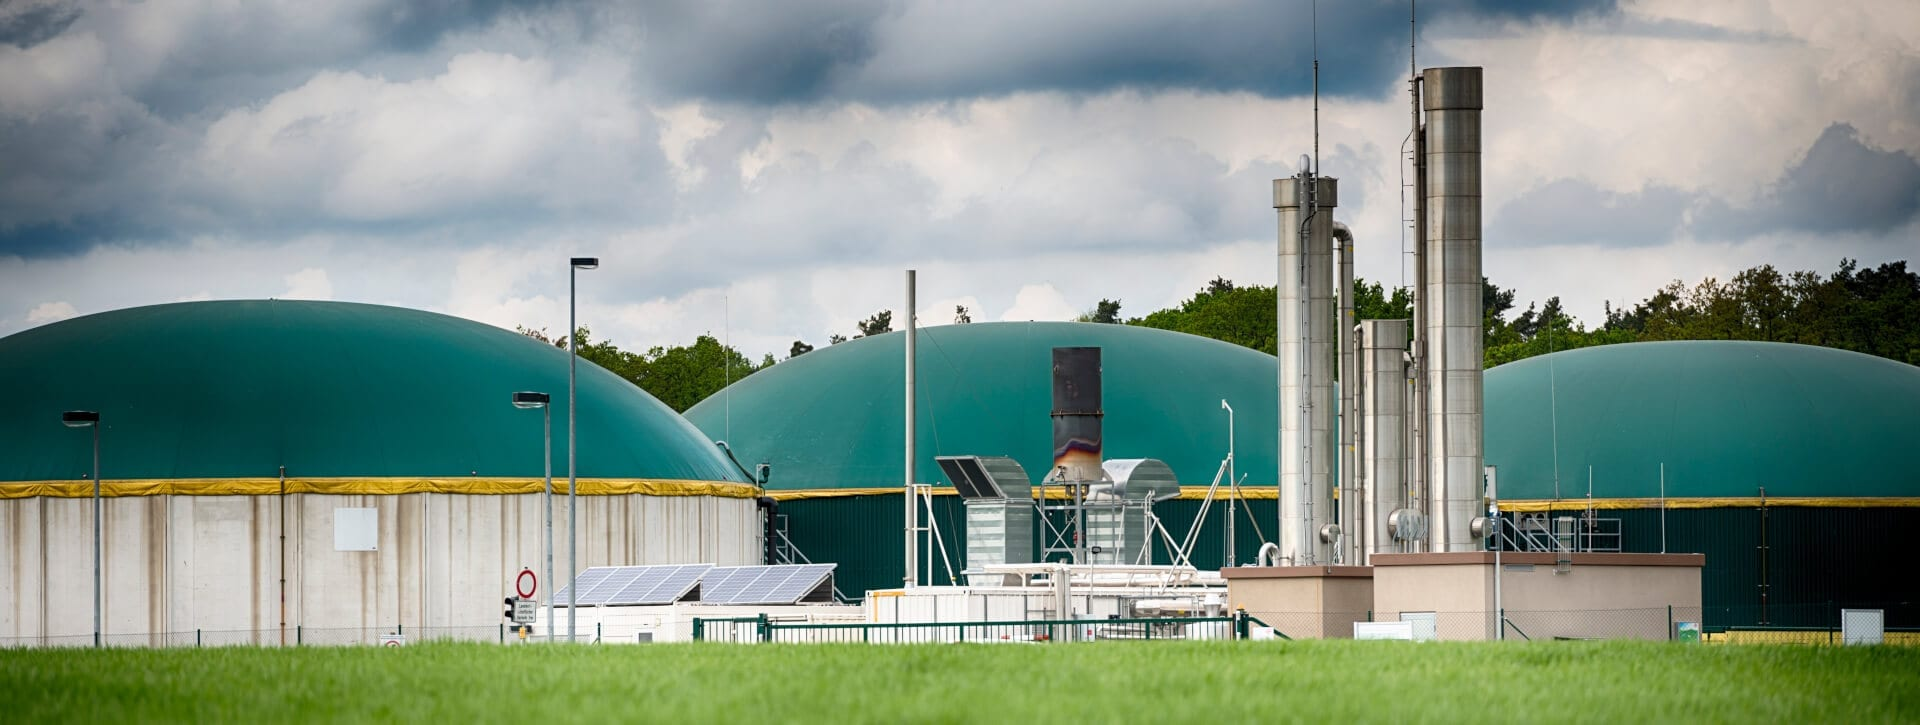 Biogas industrial location with three domed buildings